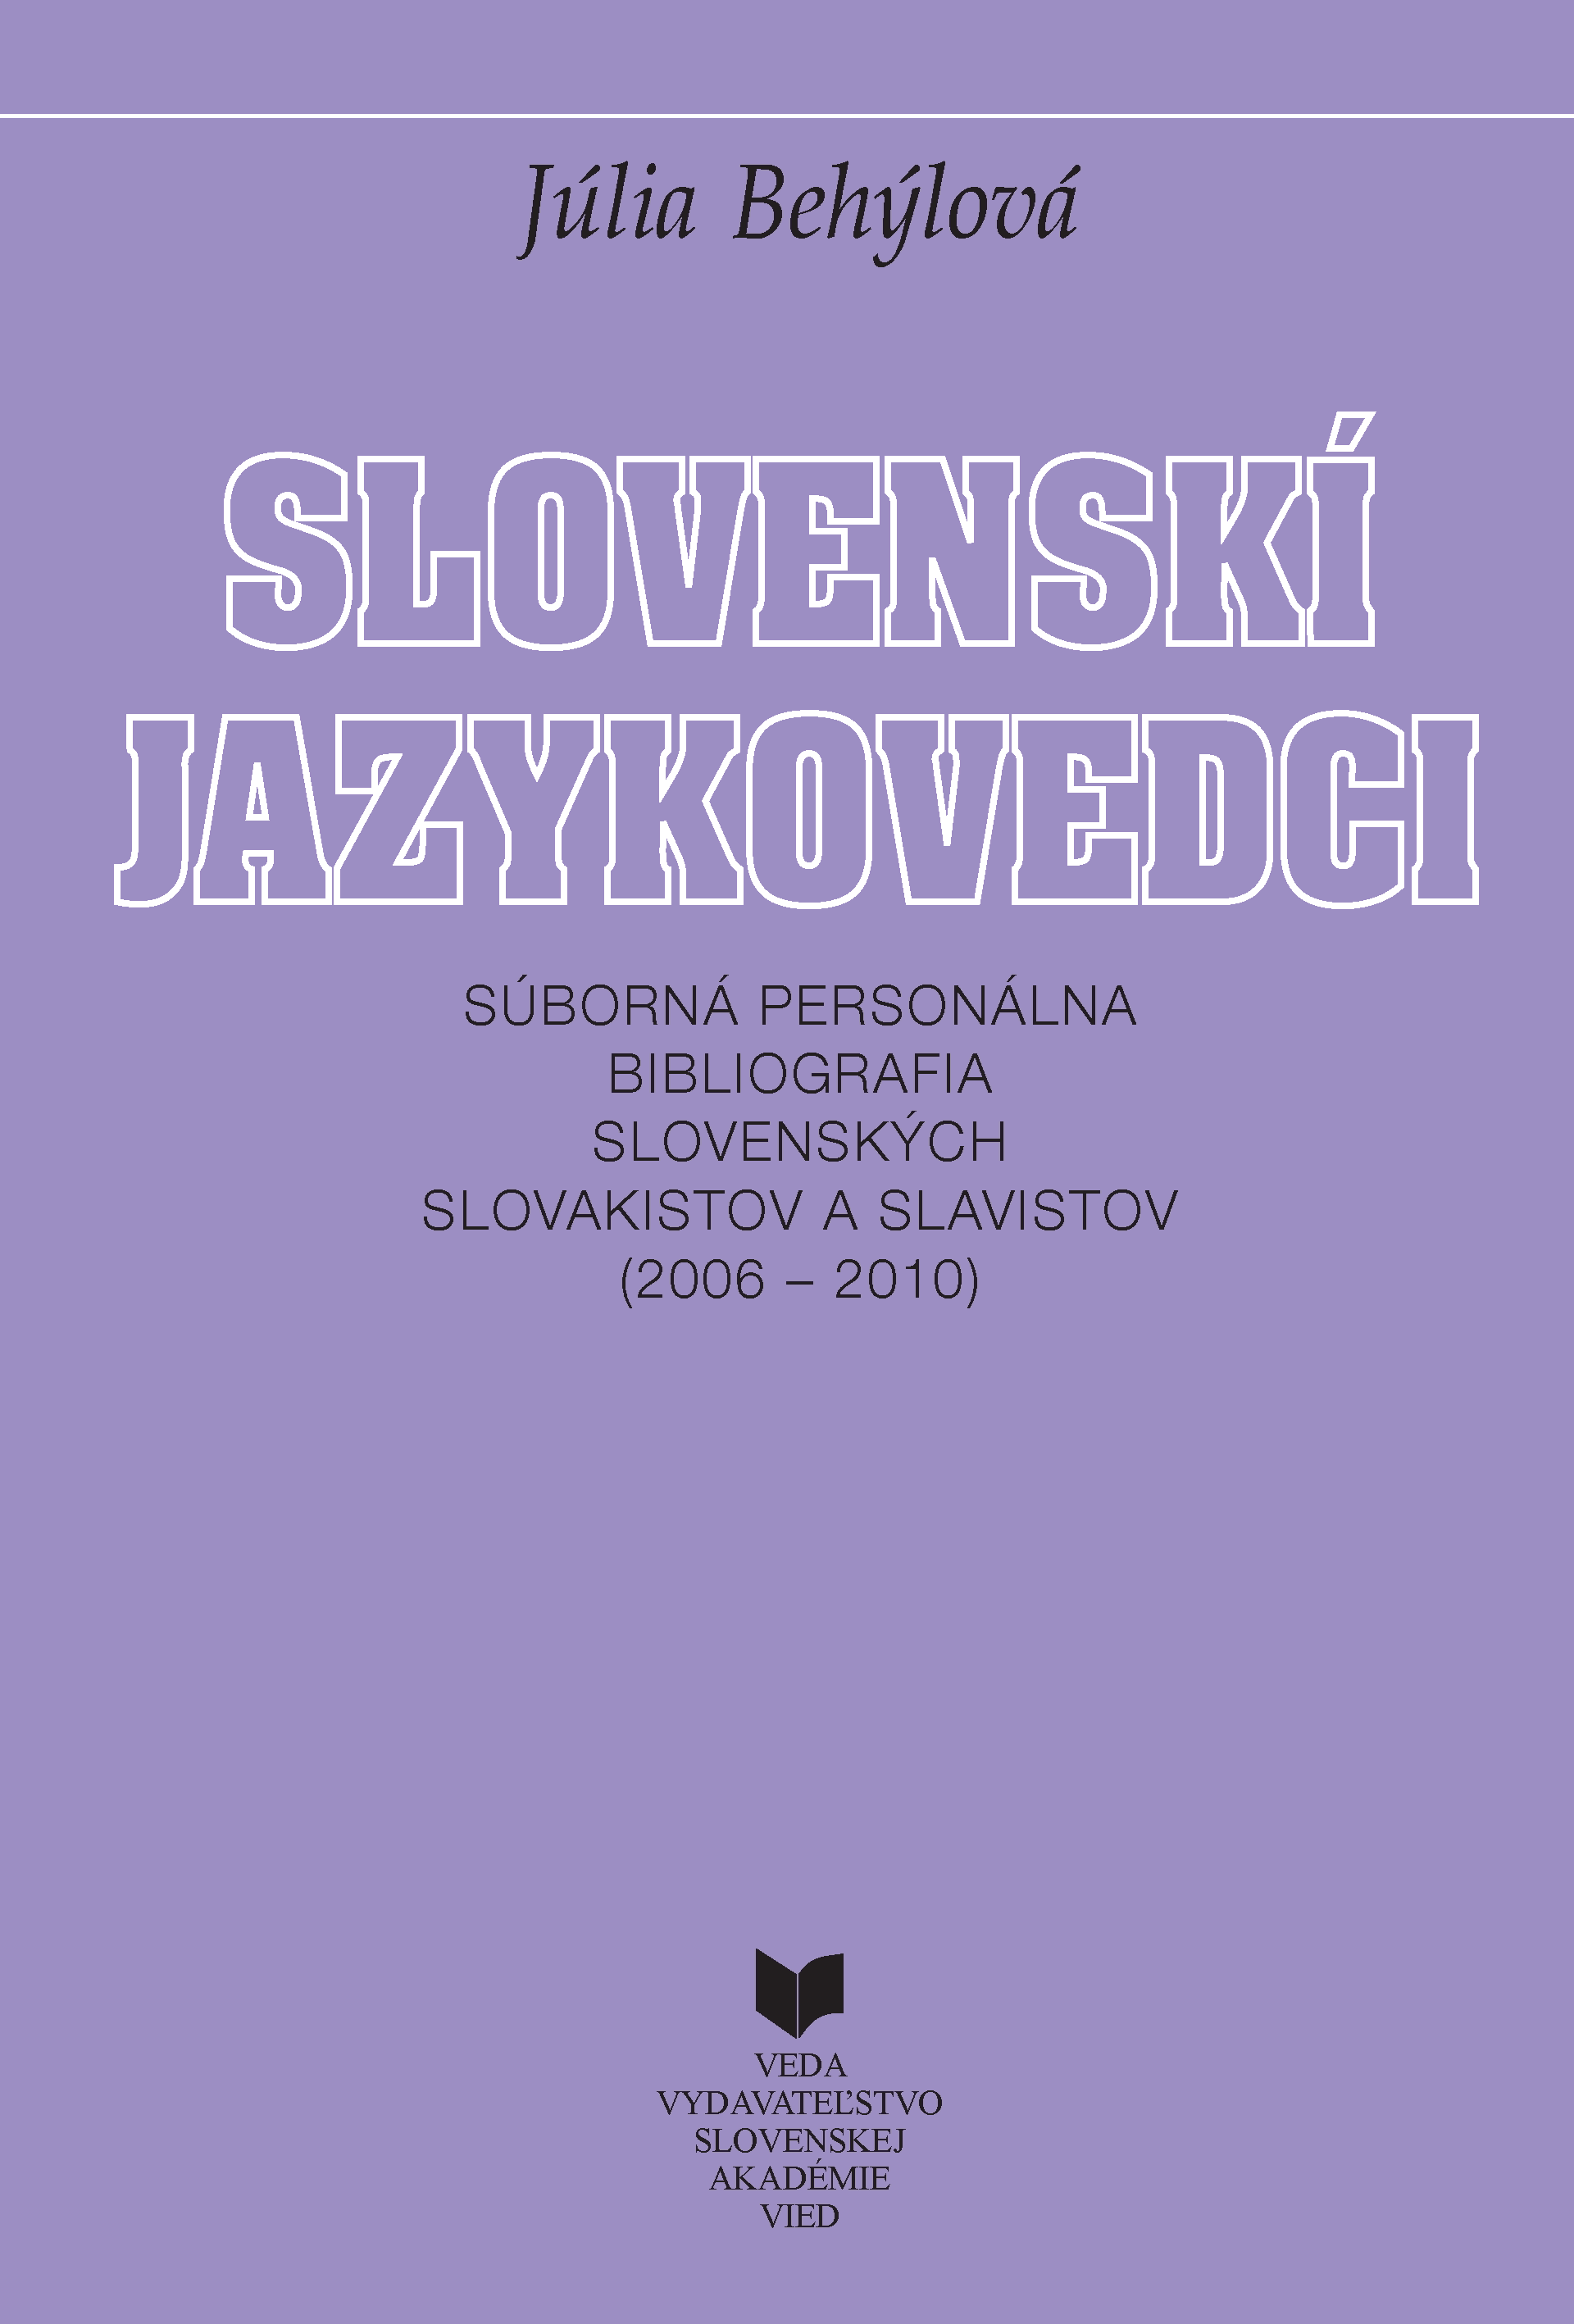 jazykovedci_2006_2010.png